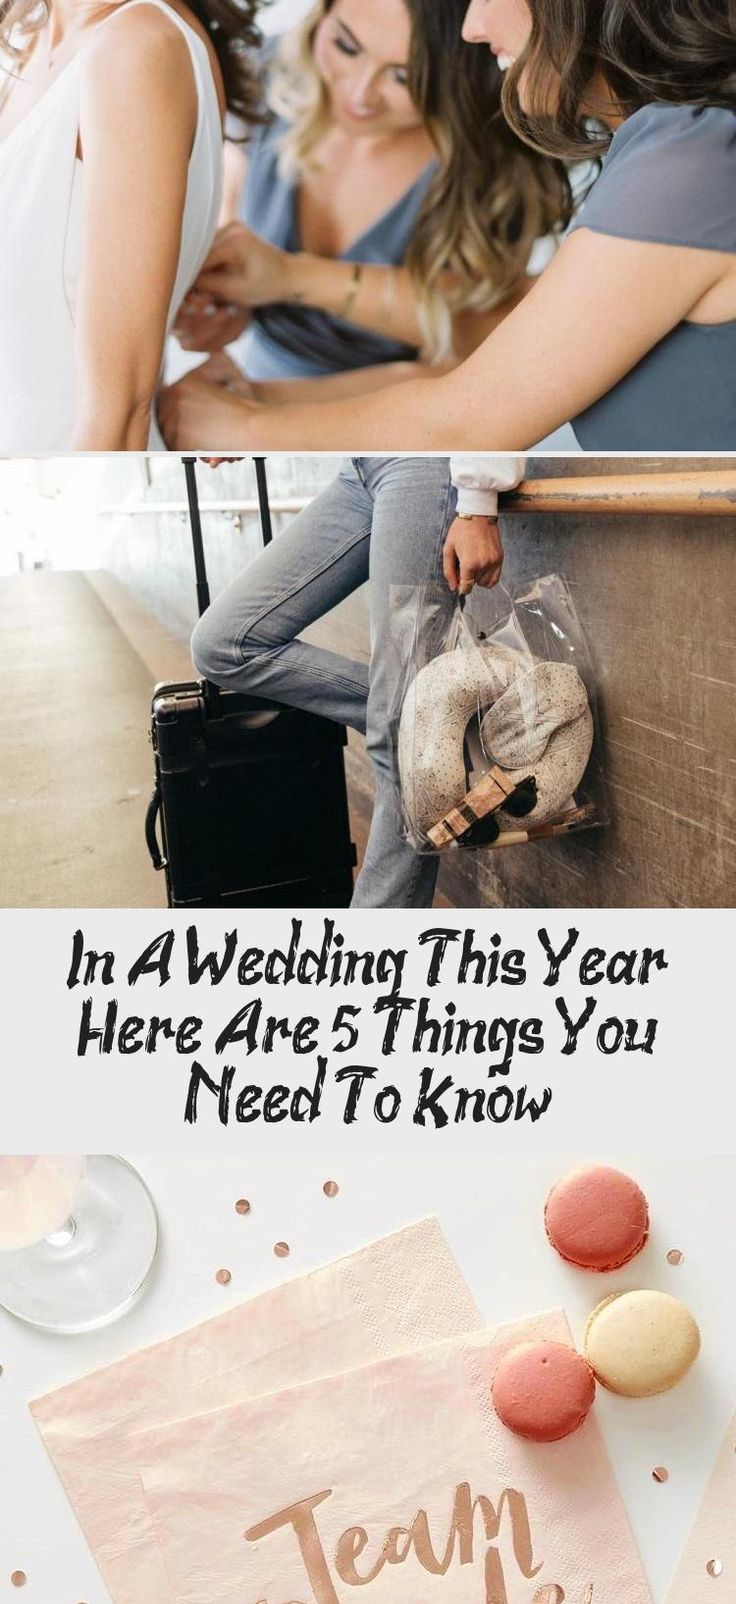 In a Wedding This Year? Here Are 5 Things You Need to Know | The Everygirl #BridesmaidDressesBlue #TaupeBridesmaidDresses #ModestBridesmaidDresses #BurgundyBridesmaidDresses #SimpleBridesmaidDresses